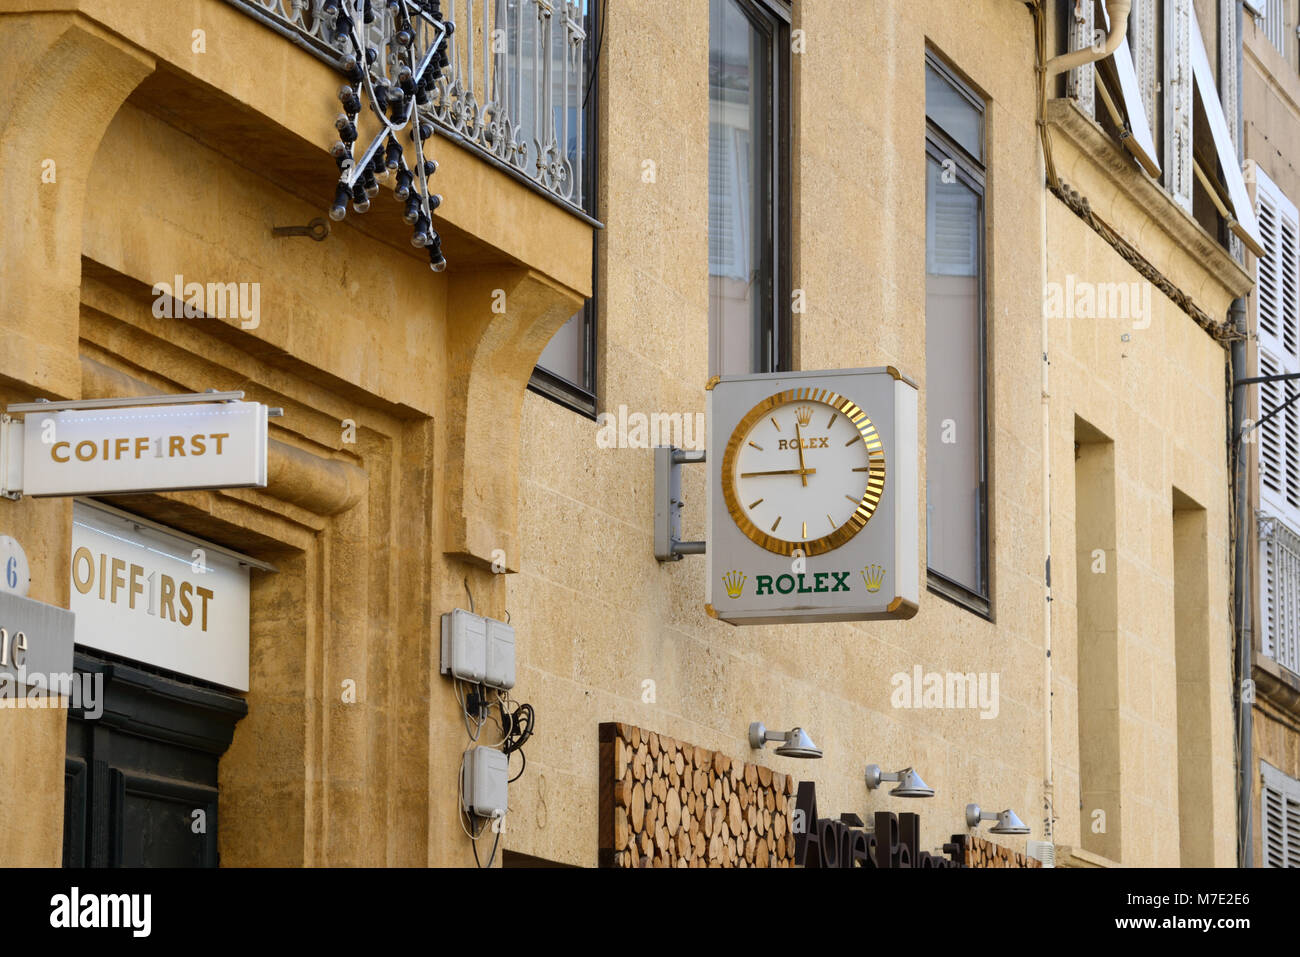 Rolex Watch Shop Aix-en-Provence France - Stock Image